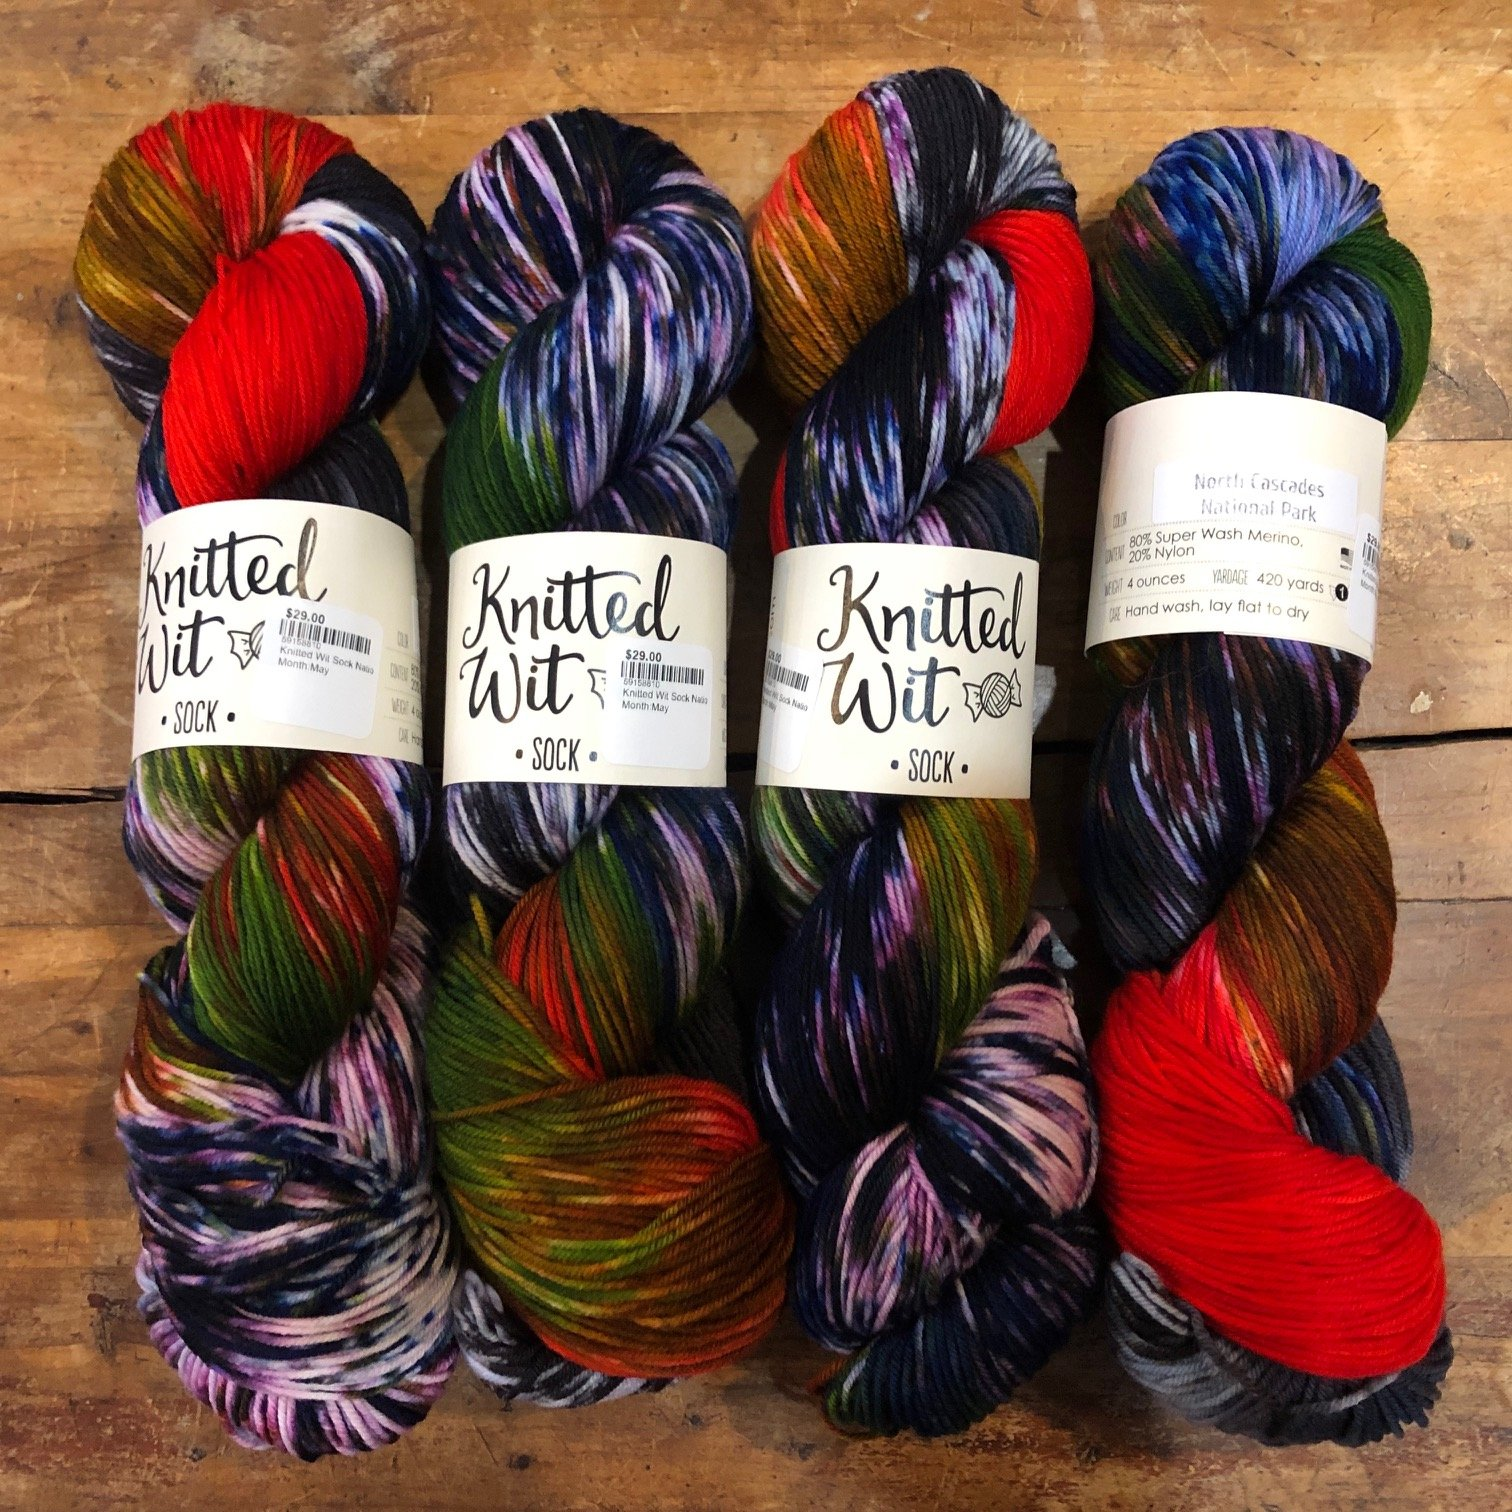 Knitted Wit Sock National Park - pre order